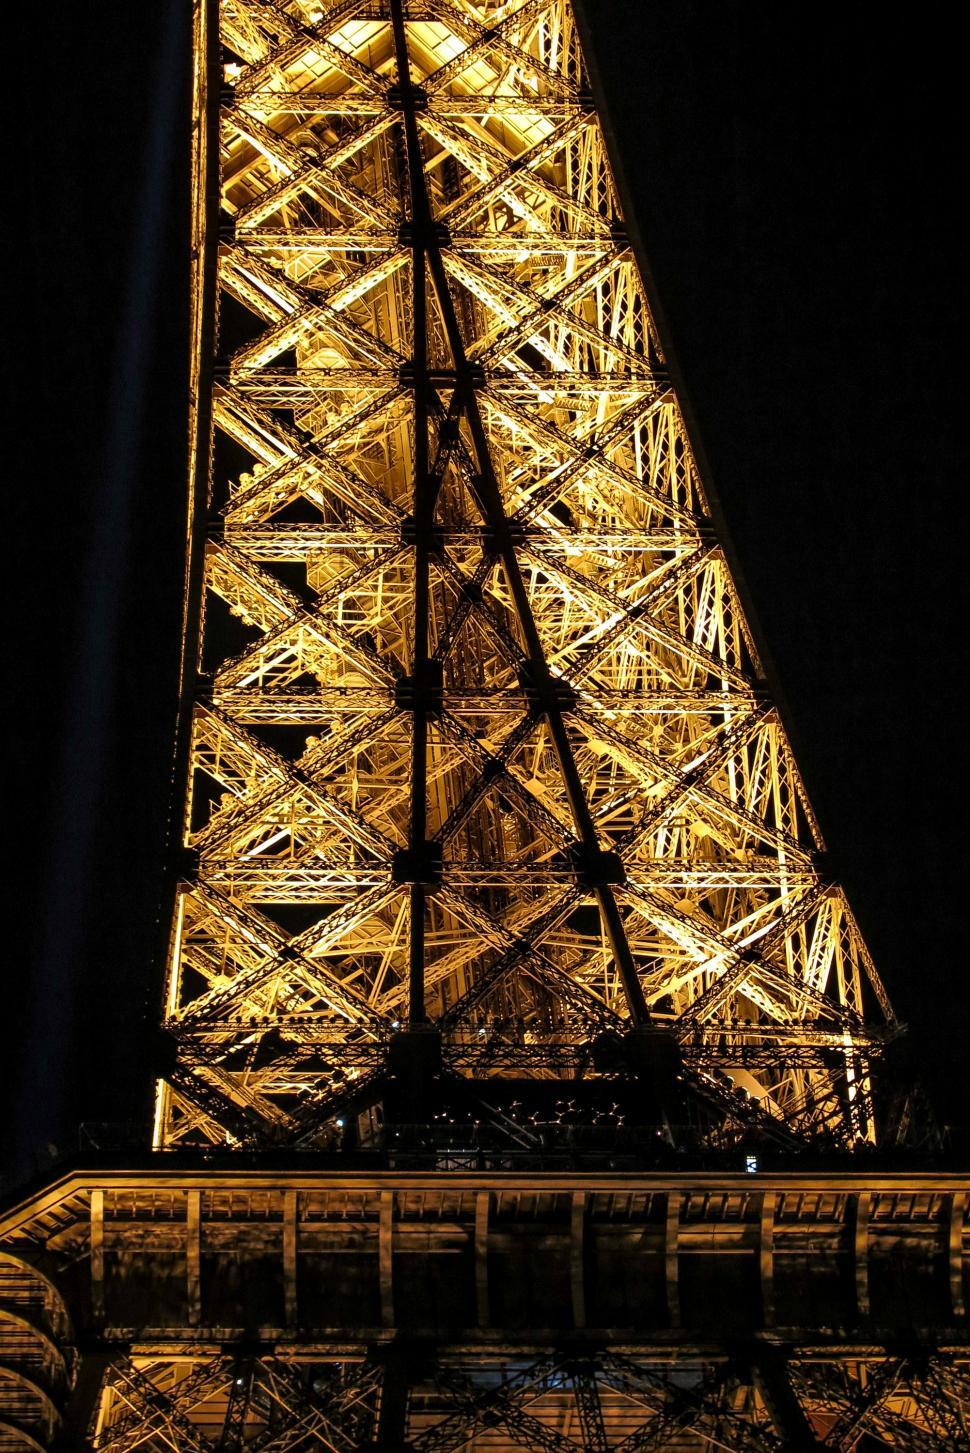 Download Free Stock Photo of Tower Structure at Night